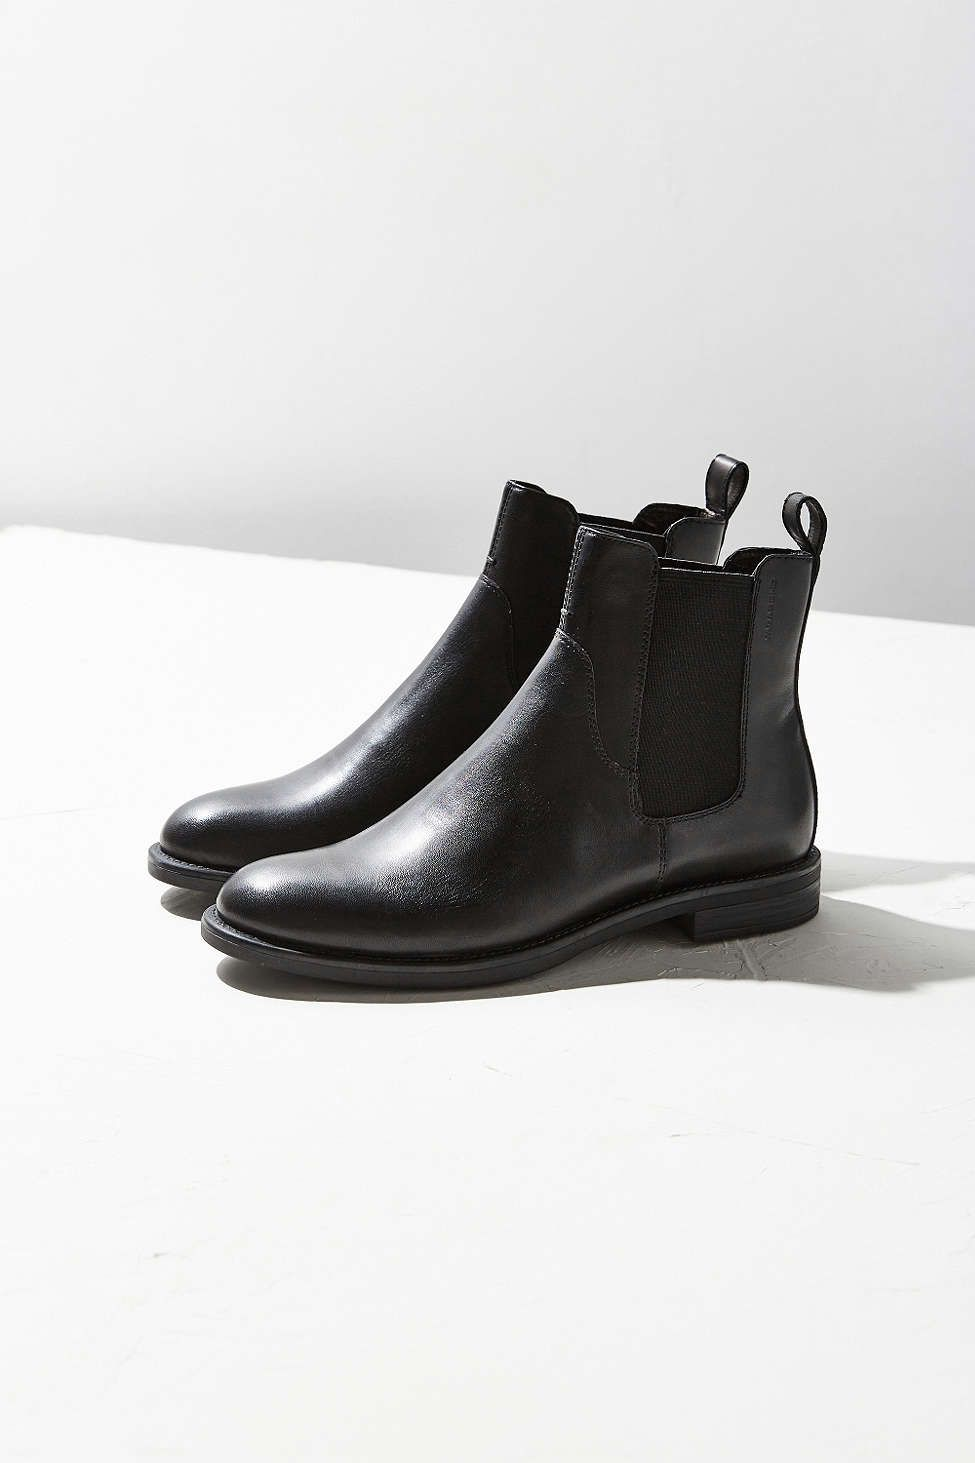 Clearance 100% Original Vagabond AMINA women's Mid Boots in Sale Wiki Discount High Quality Free Shipping Original New Fashion Style Of G5aVM